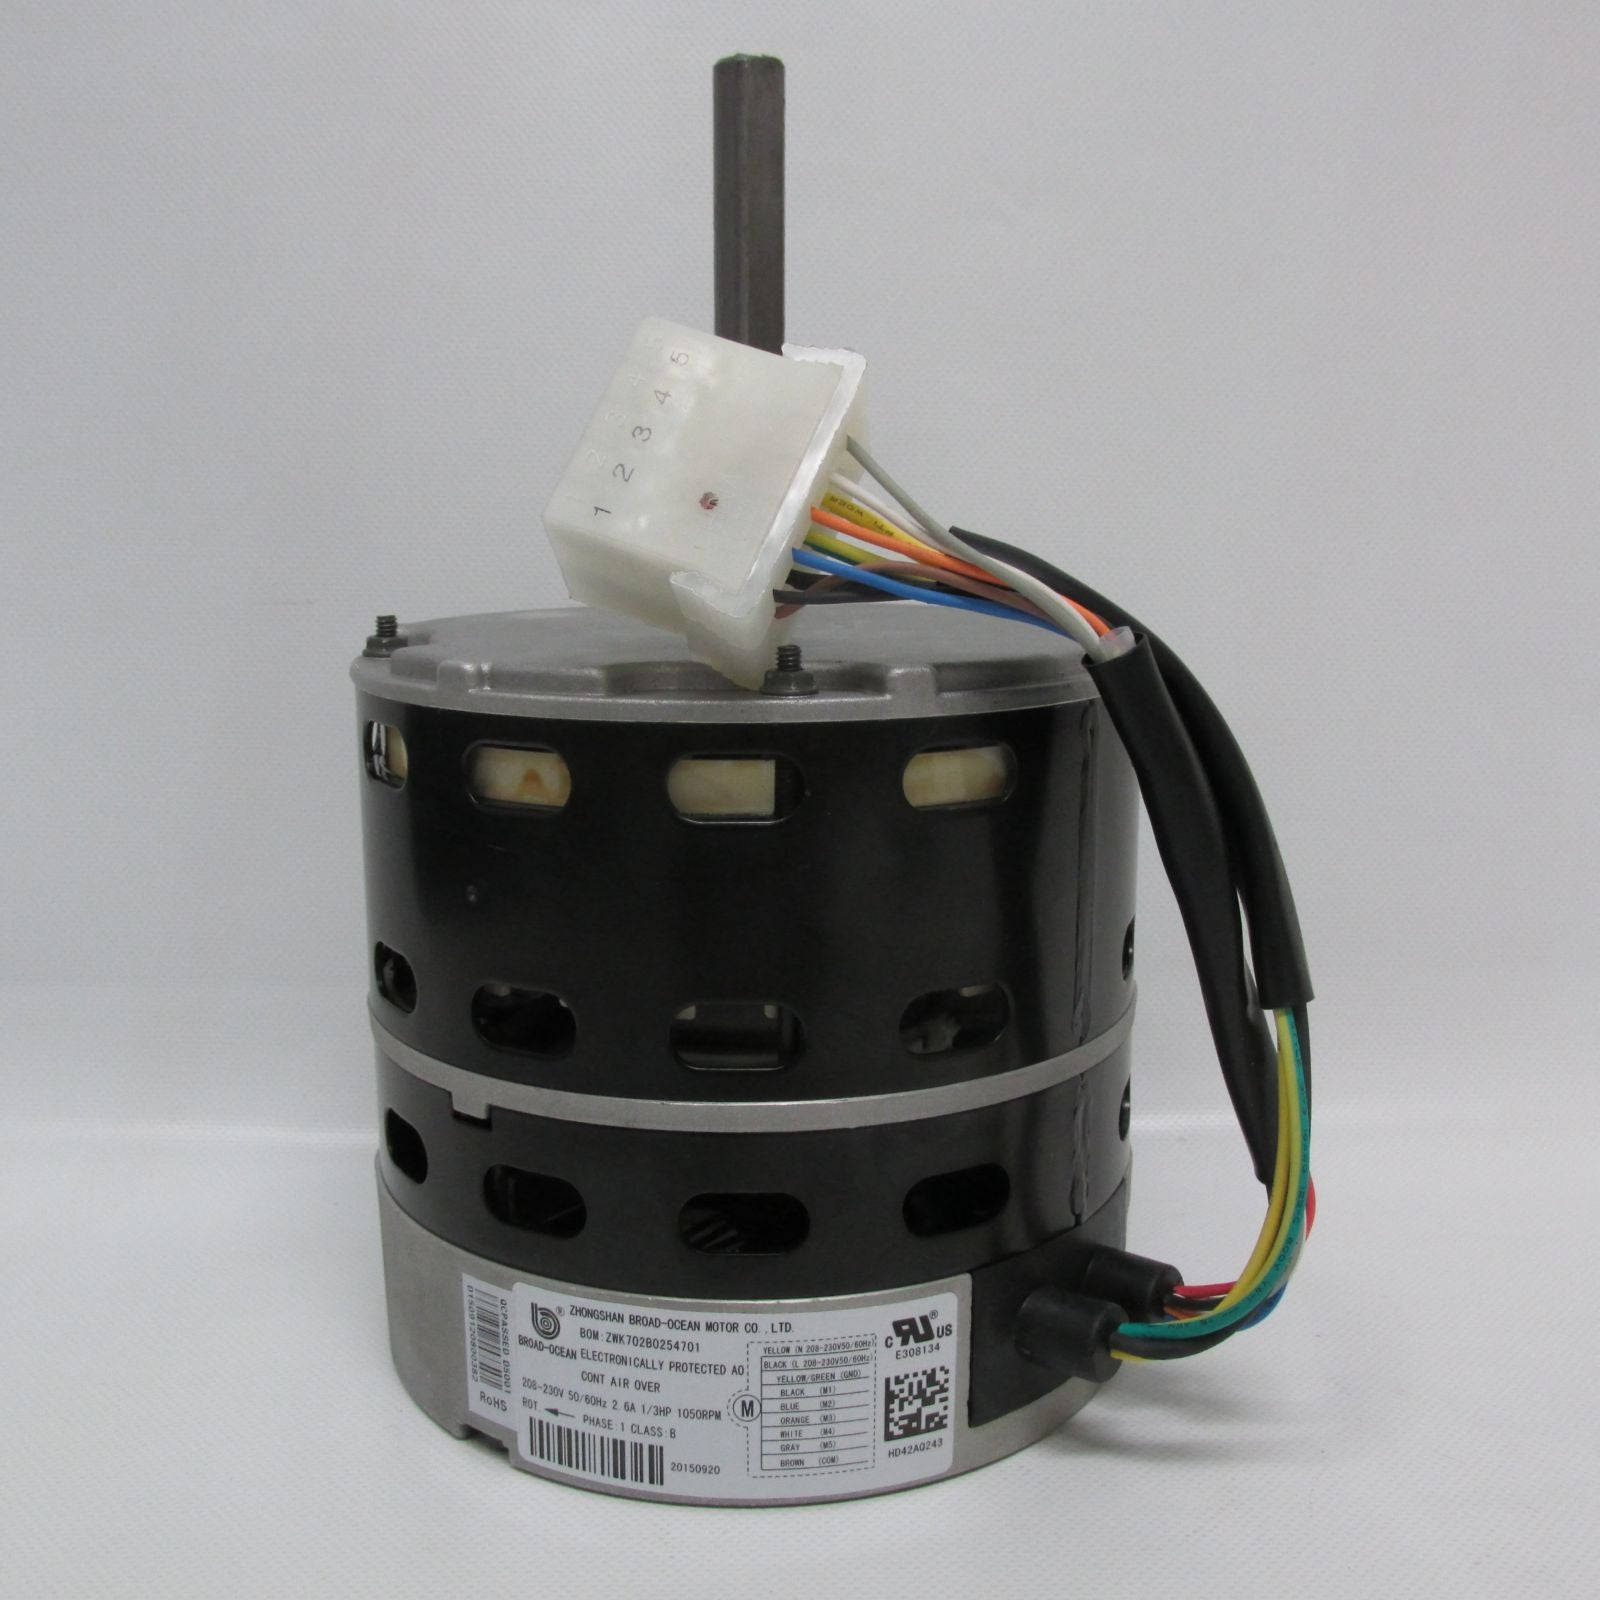 rcd-parts_hd42aq243_article_1460731717048_en_normal_9706444b-65be-4452-bb04-3c617a929902.jpg?v=1490112977